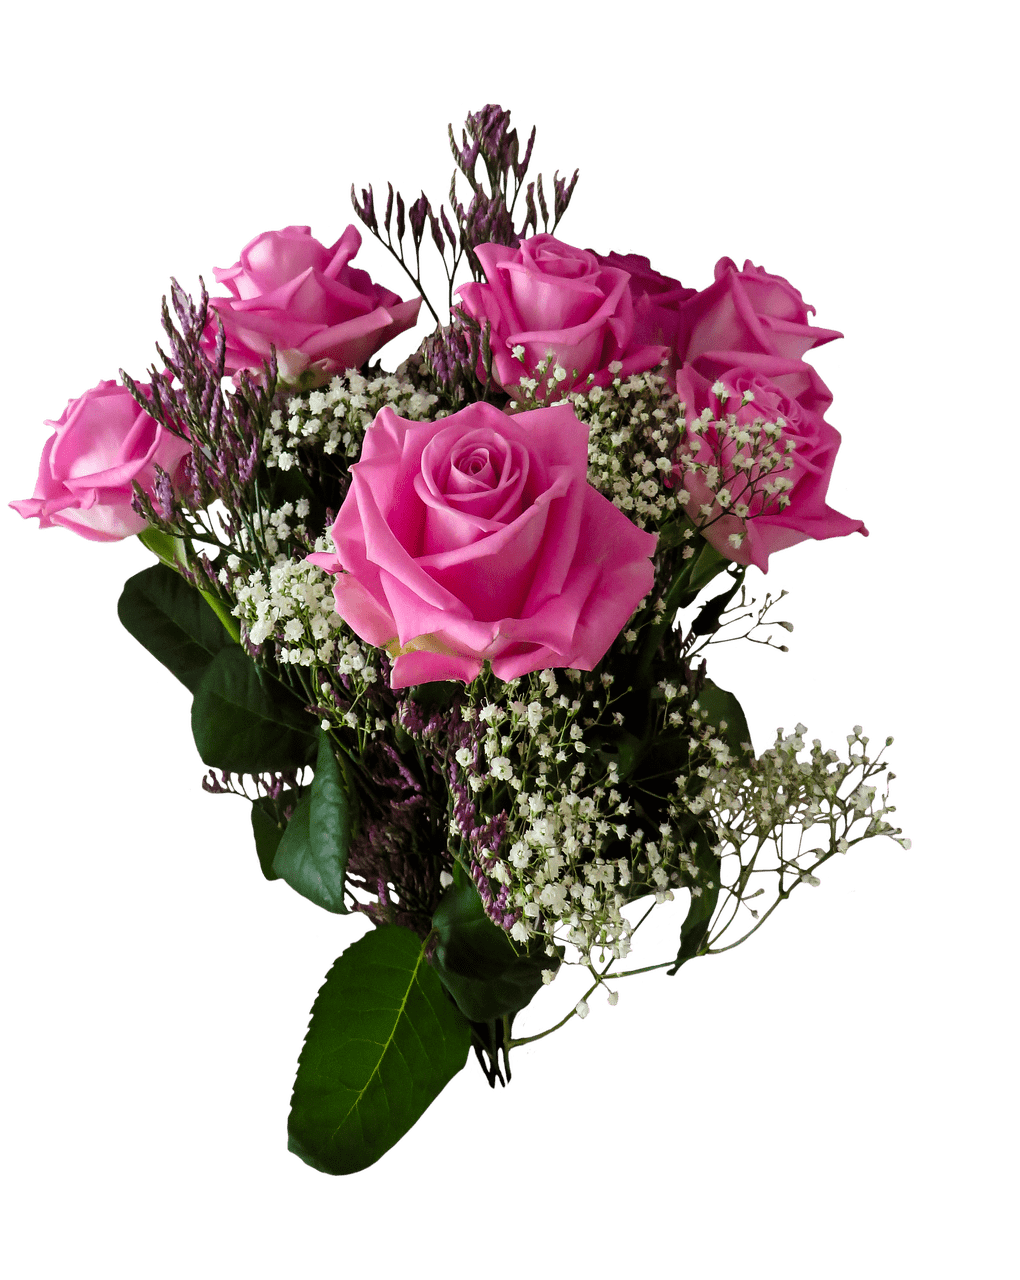 Birthday Roses Transparent Png Stickpng